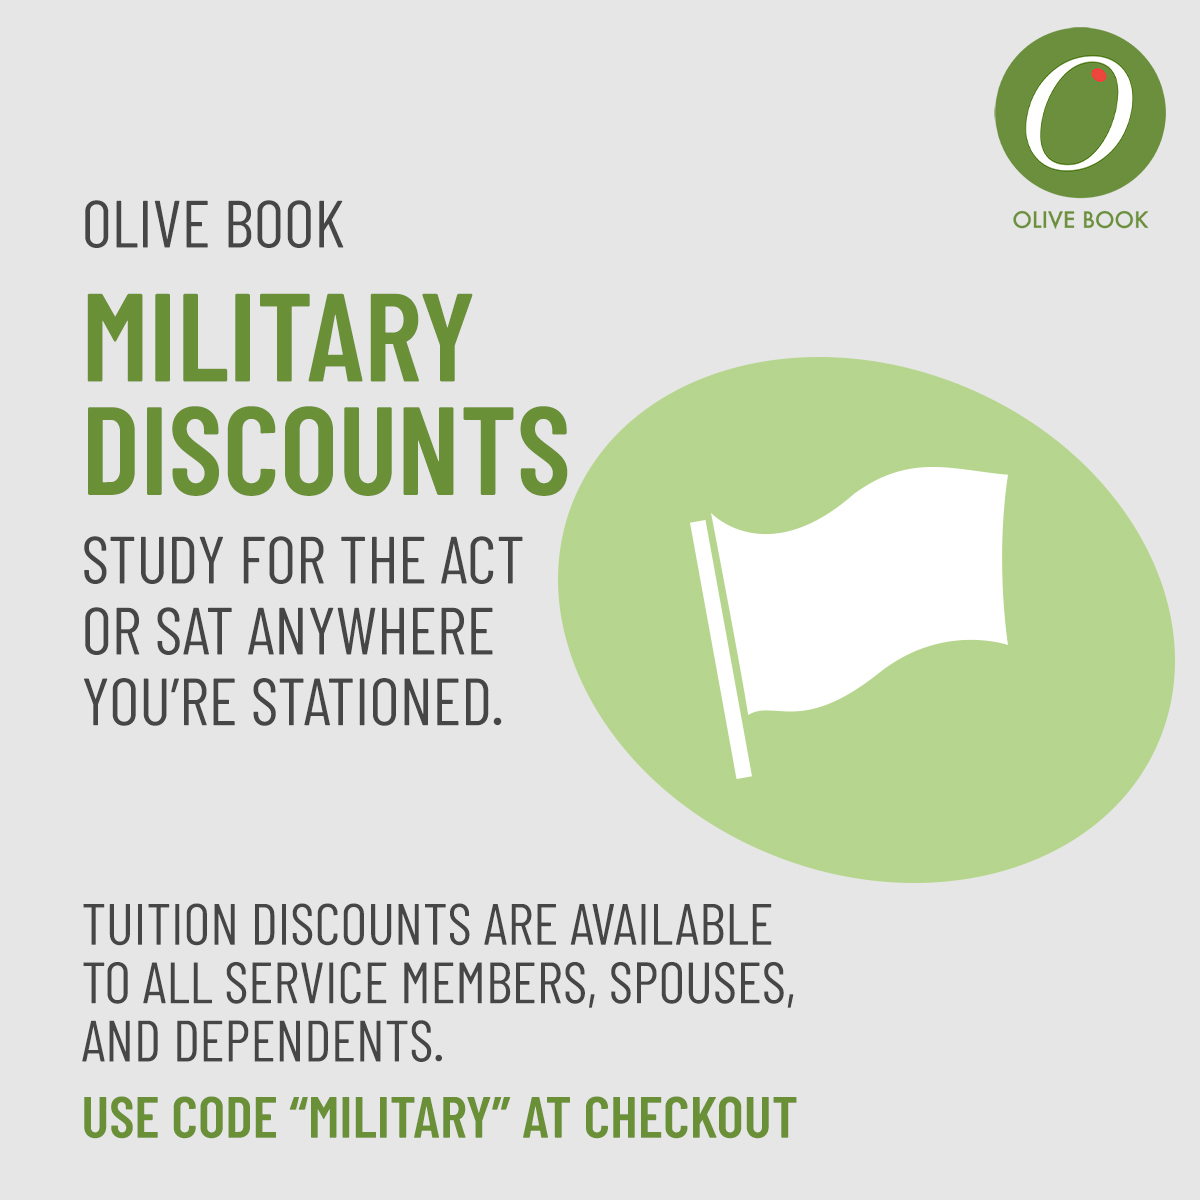 """Are you a member of the #military community?   Olive Book's online, self-paced #ACT and #SAT courses are ideal for families on the move. 💻  Tuition discounts are available to all service members, spouses, dependents, and veterans. Just use code """"MILITARY"""" at checkout. https://t.co/E2B1QrEEEB"""